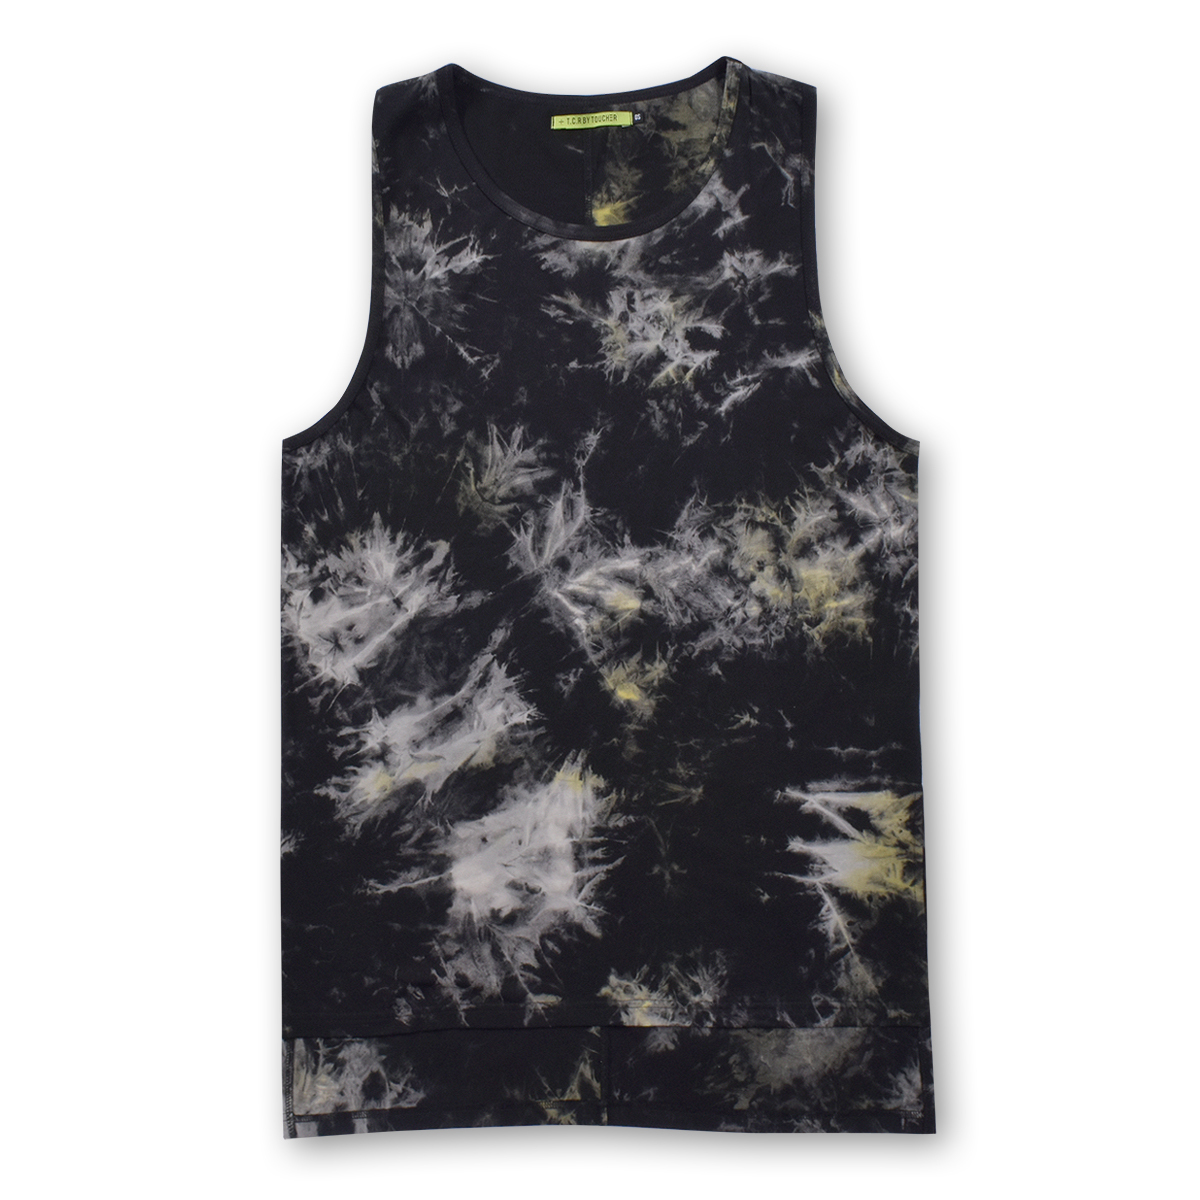 T.C.R TIE DYE LAYERED TANK TOP - YELLOW